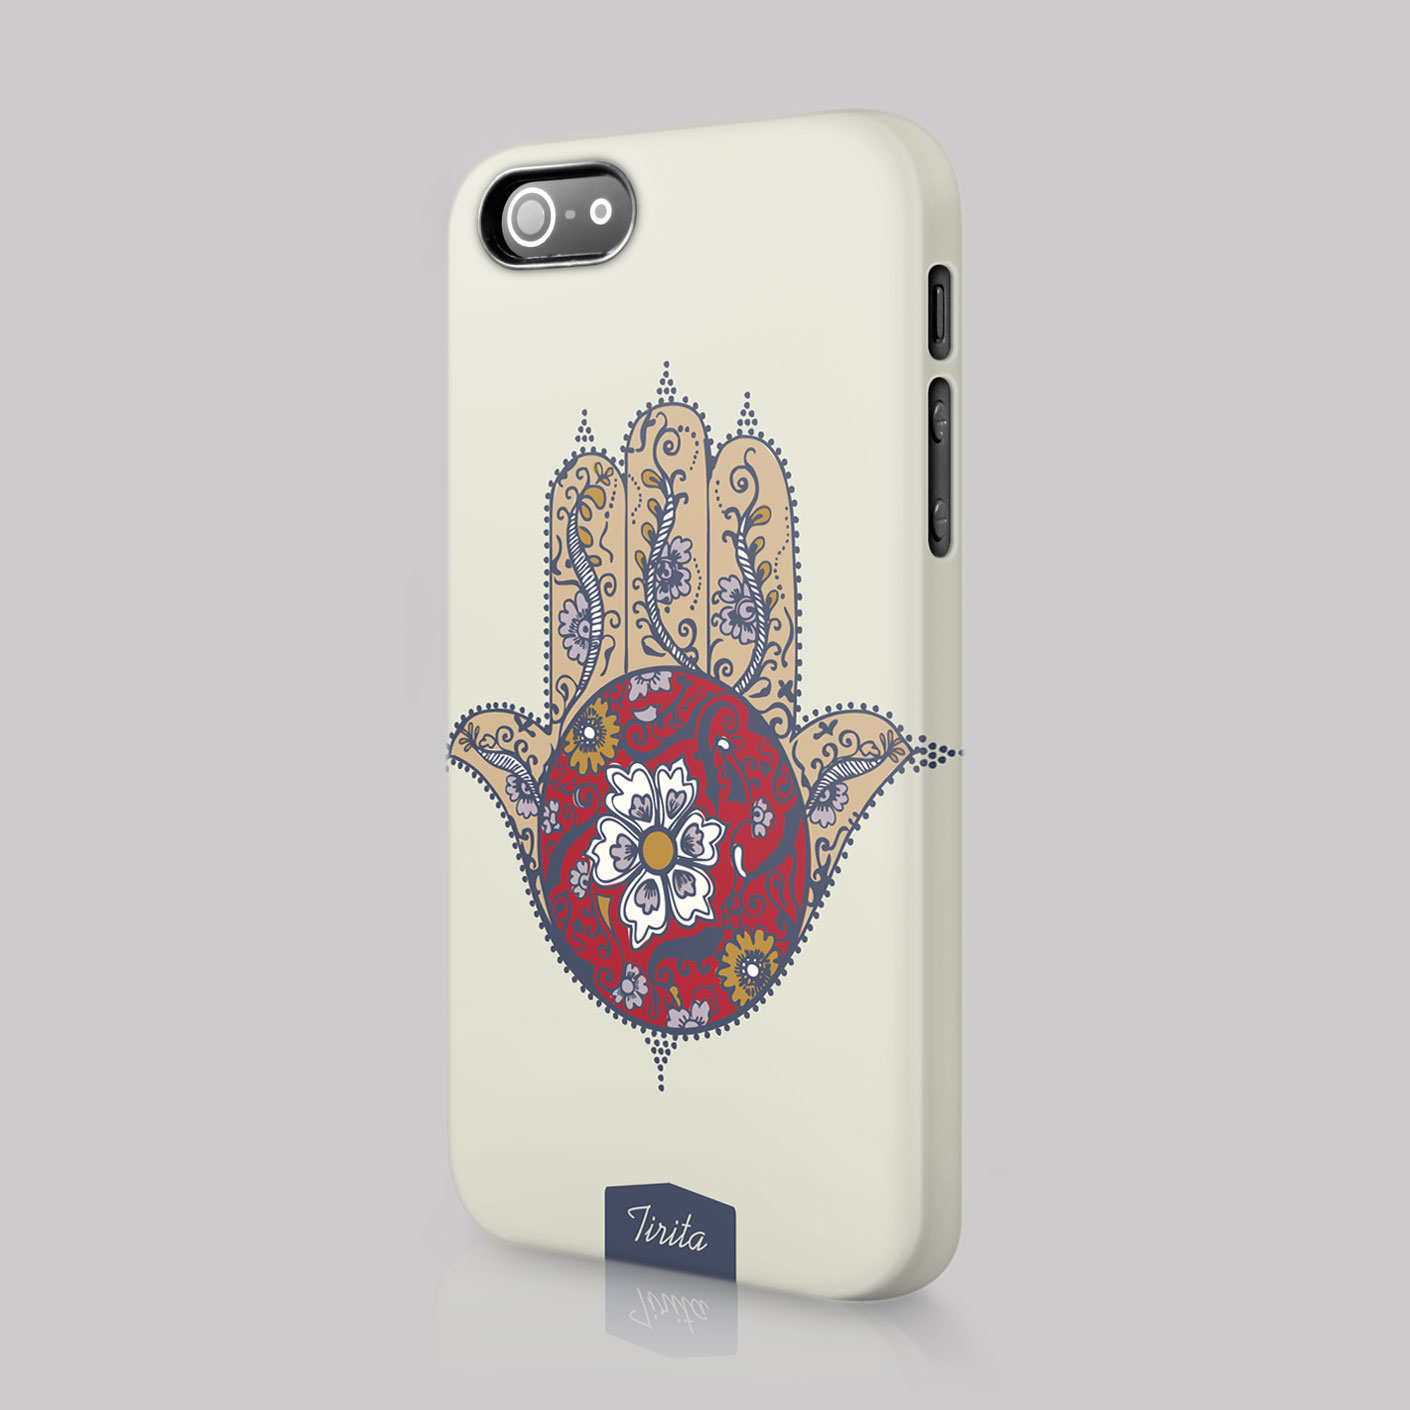 Tirita Gypsy Bohemian Boho Chic DreamCatcher Case Cover For LG Amazon Blackberry